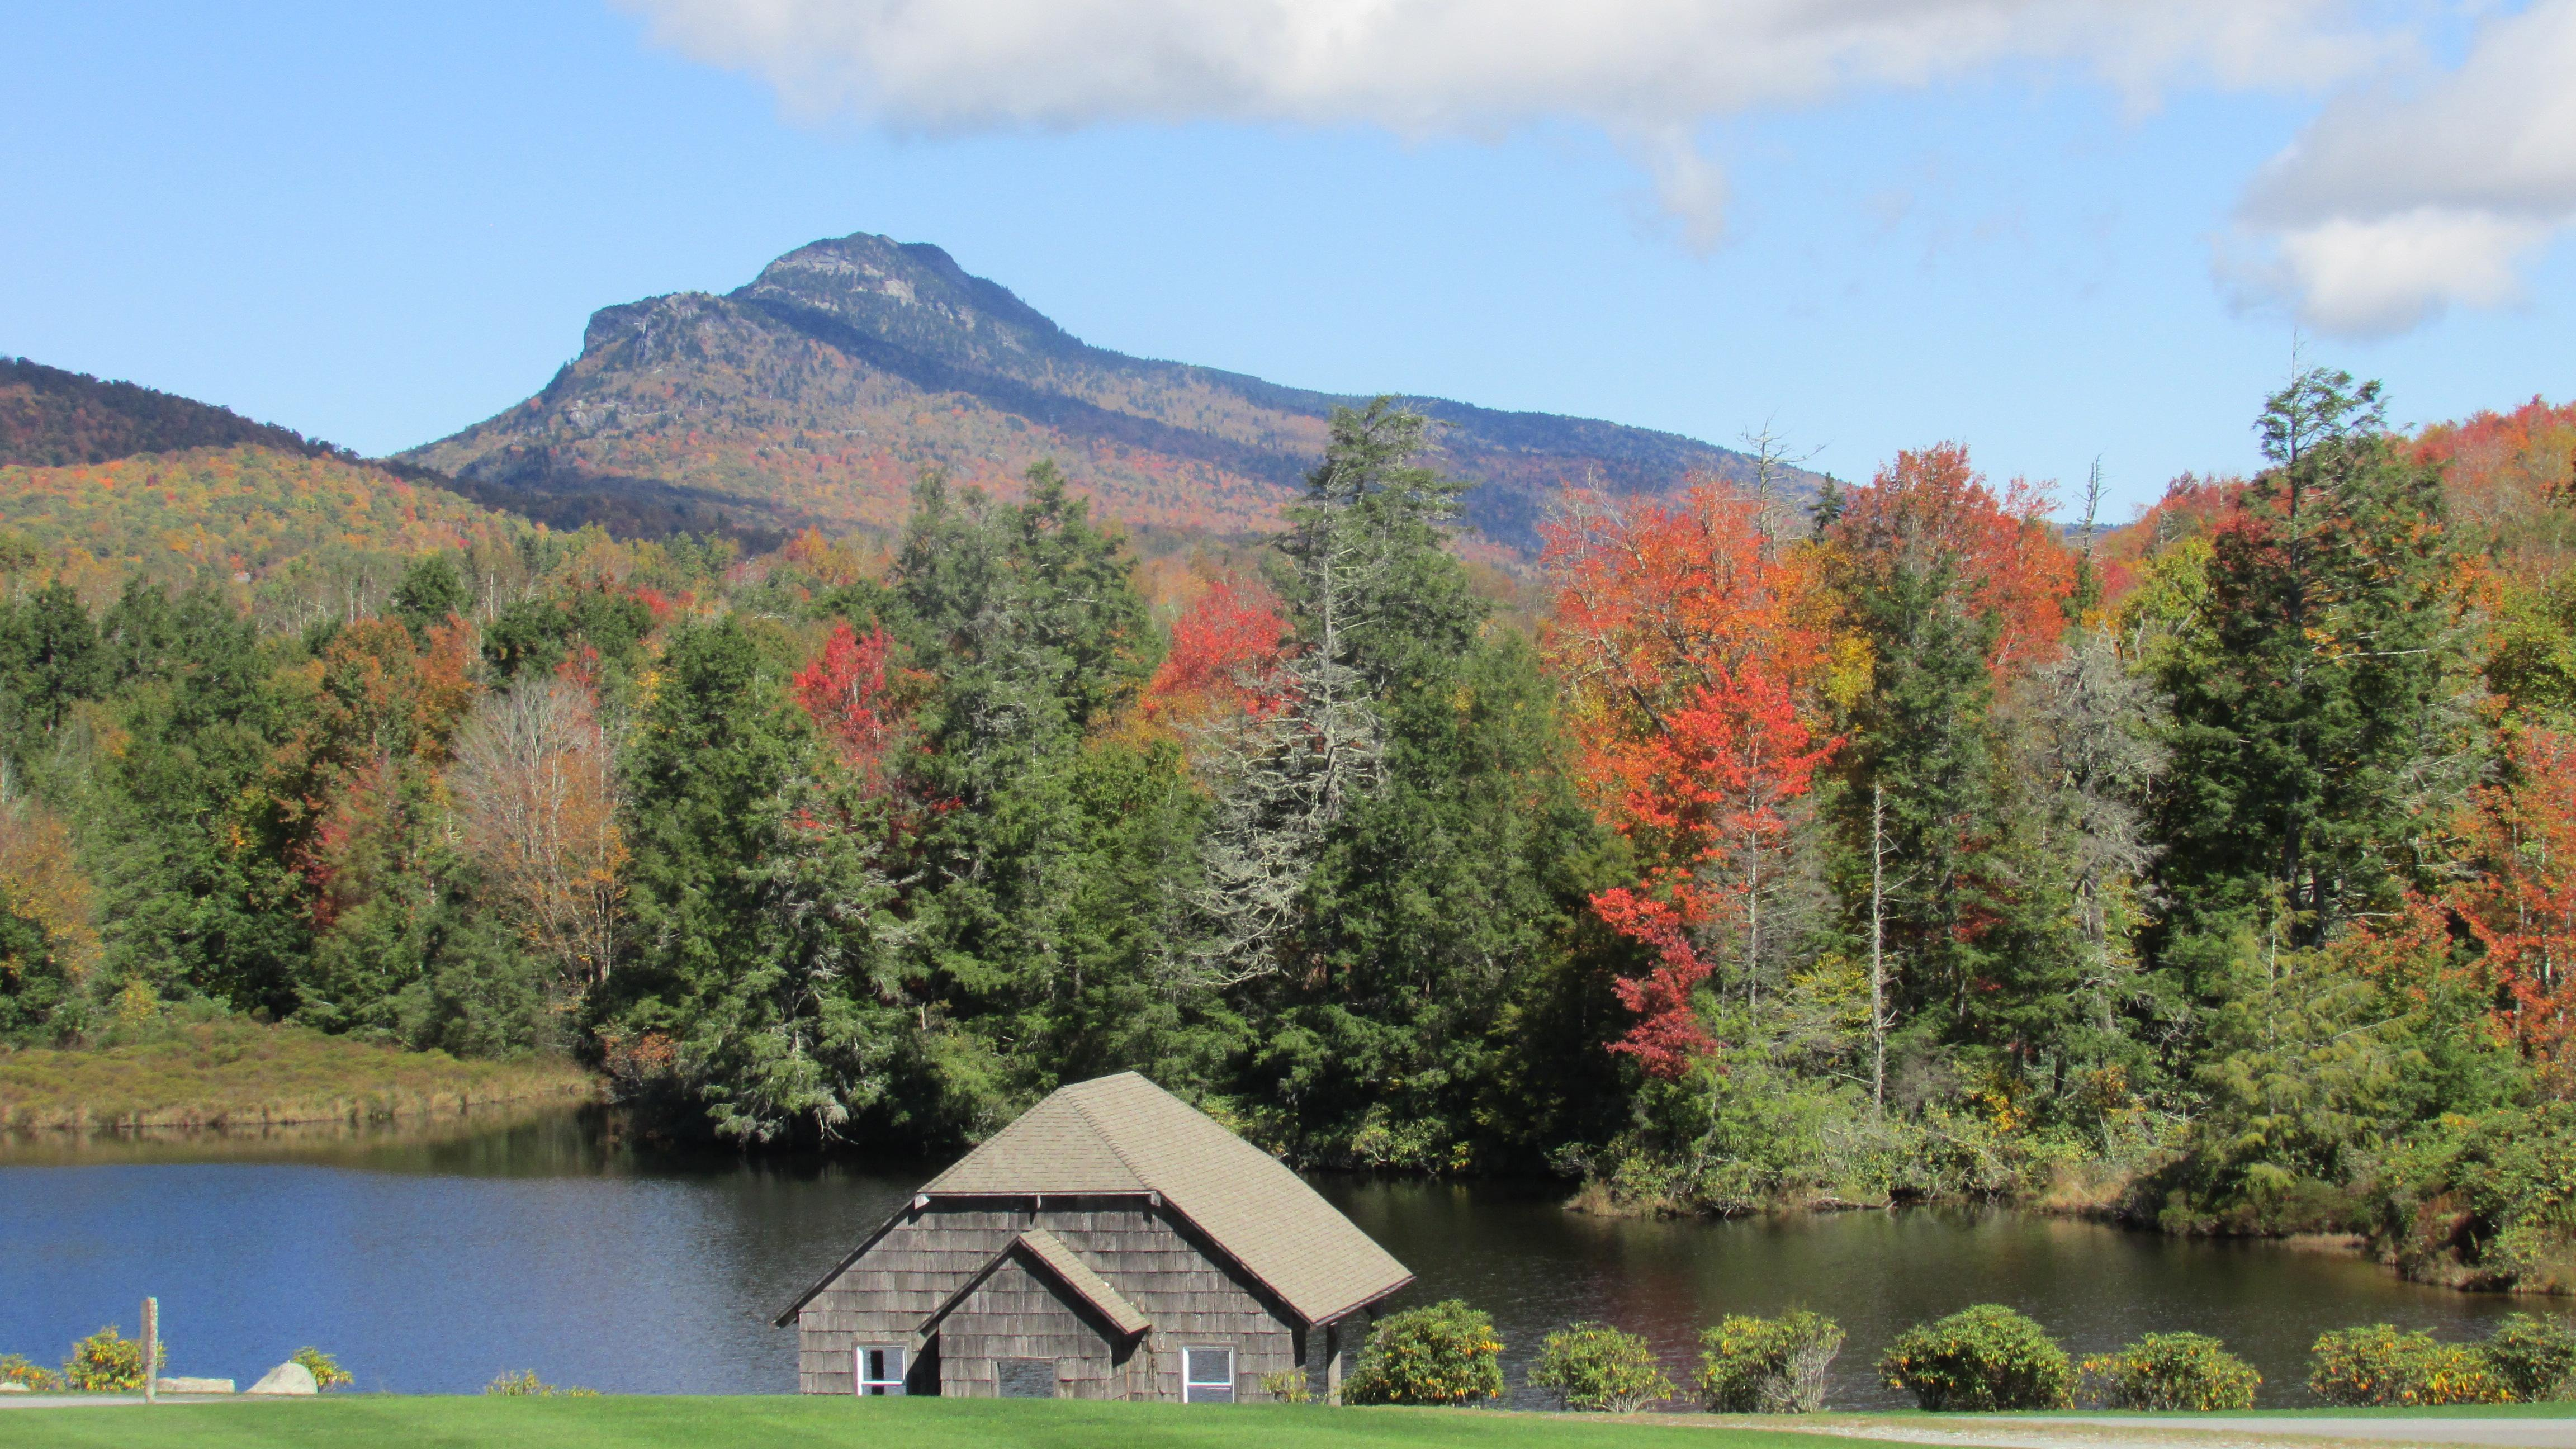 Linville Land Harbor is nestled in the western North Carolina Mountains just minutes from Grandfather Mountain.